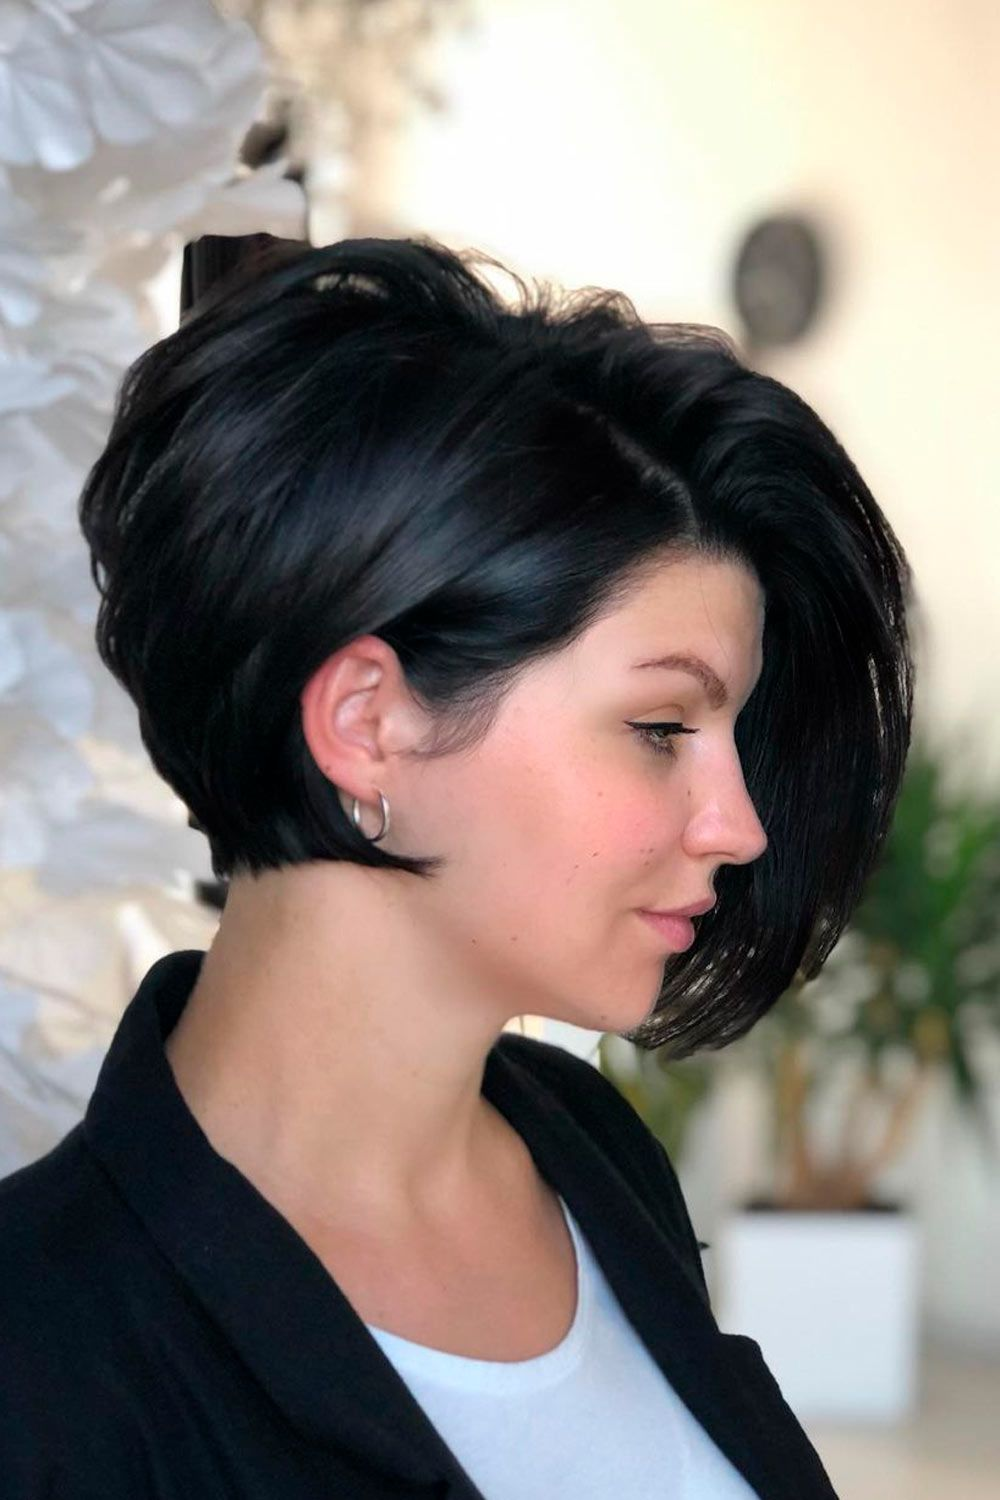 Layered Short Hairstyles For Round Faces, short haircuts for round faces, pixie cut round face, short hair for round faces